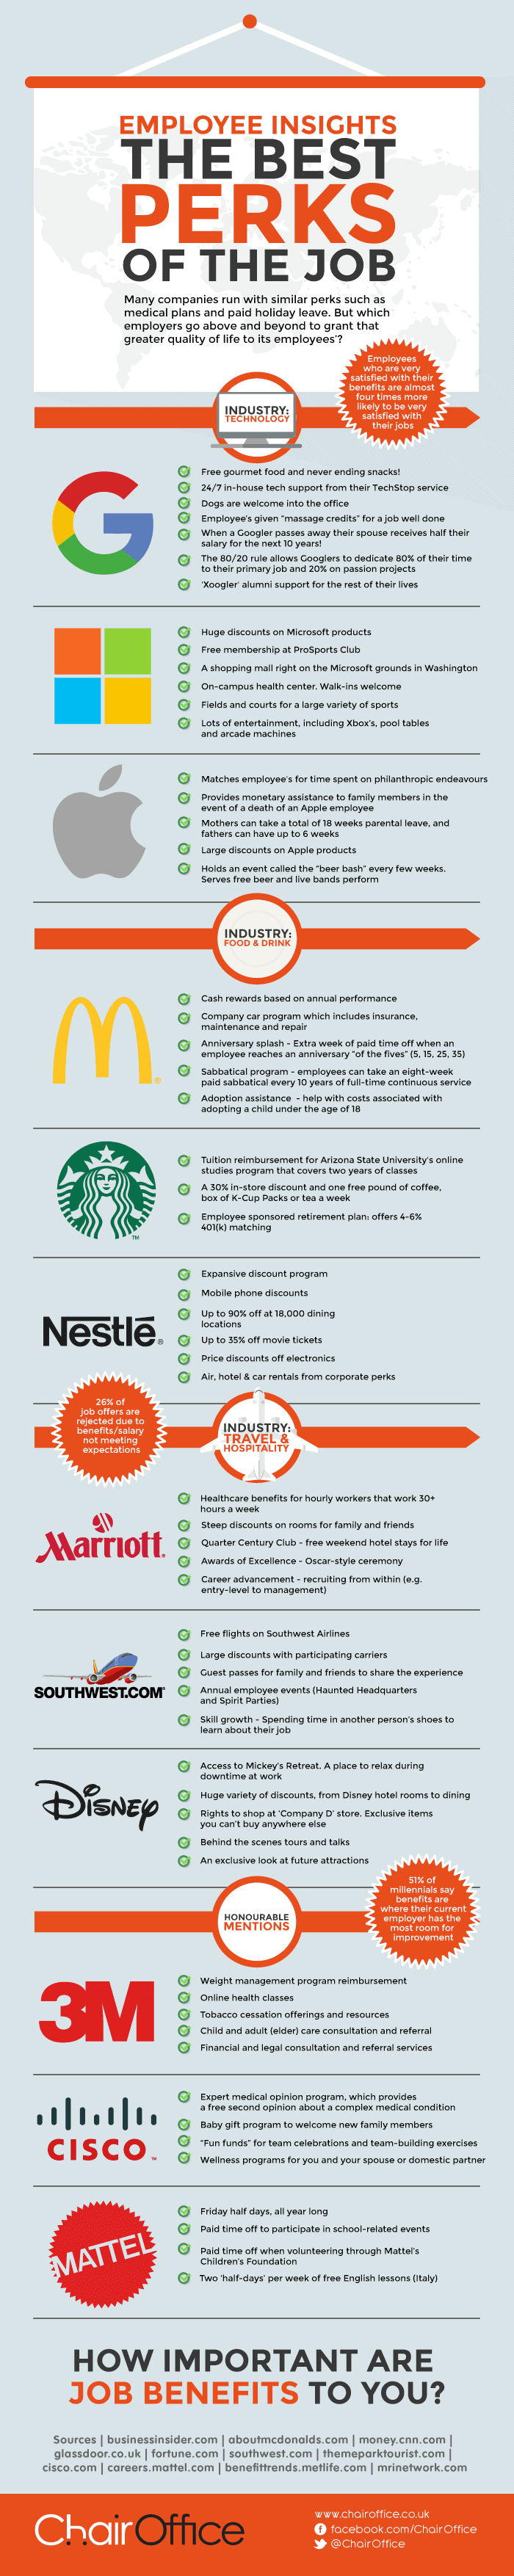 Employee Insights Infographic